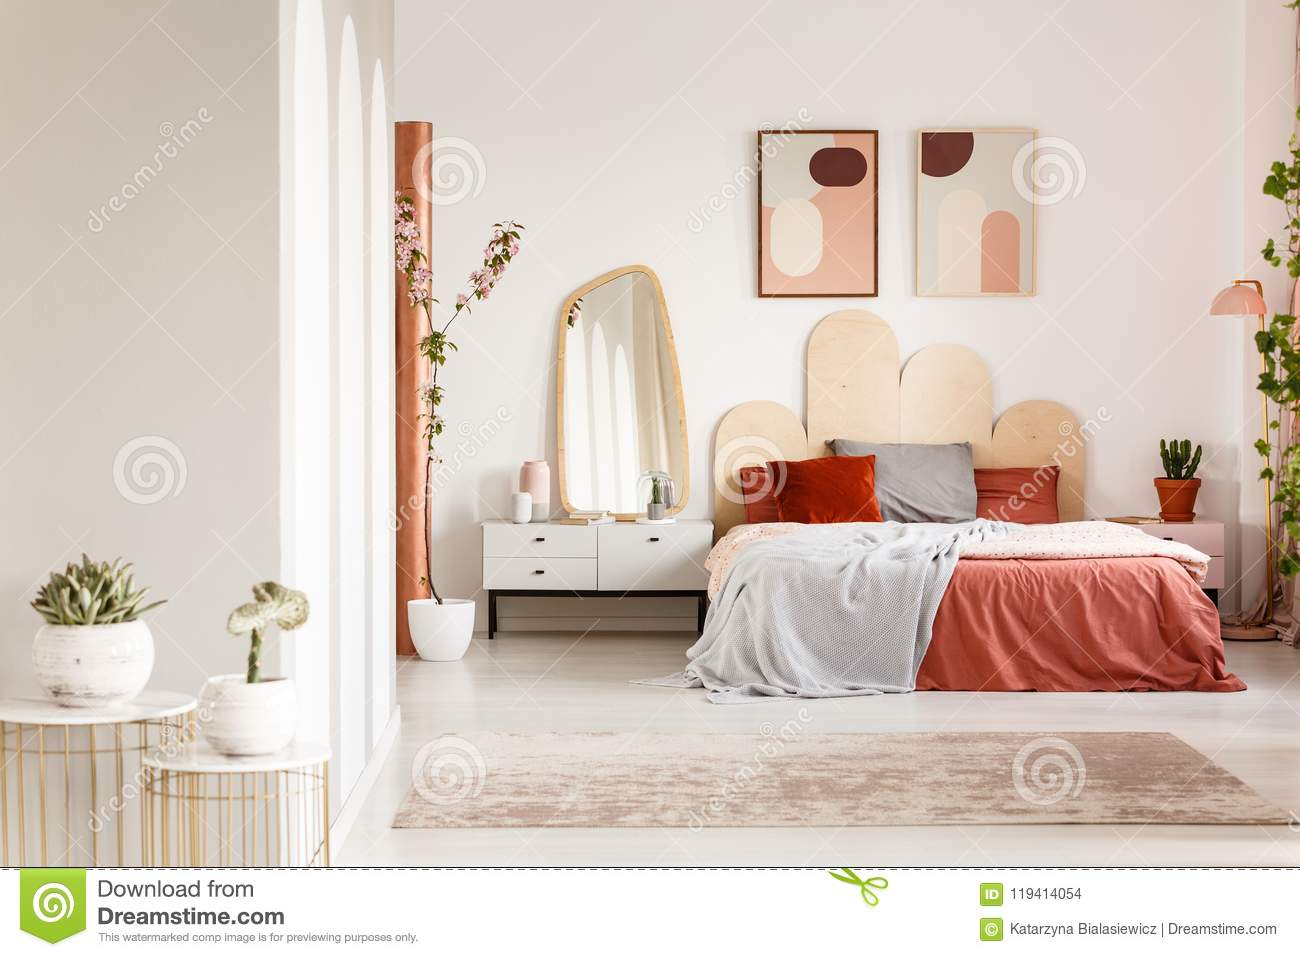 Mirror On White Cabinet Next To Orange Bed Under Posters ... on Mirrors Next To Bed  id=34807